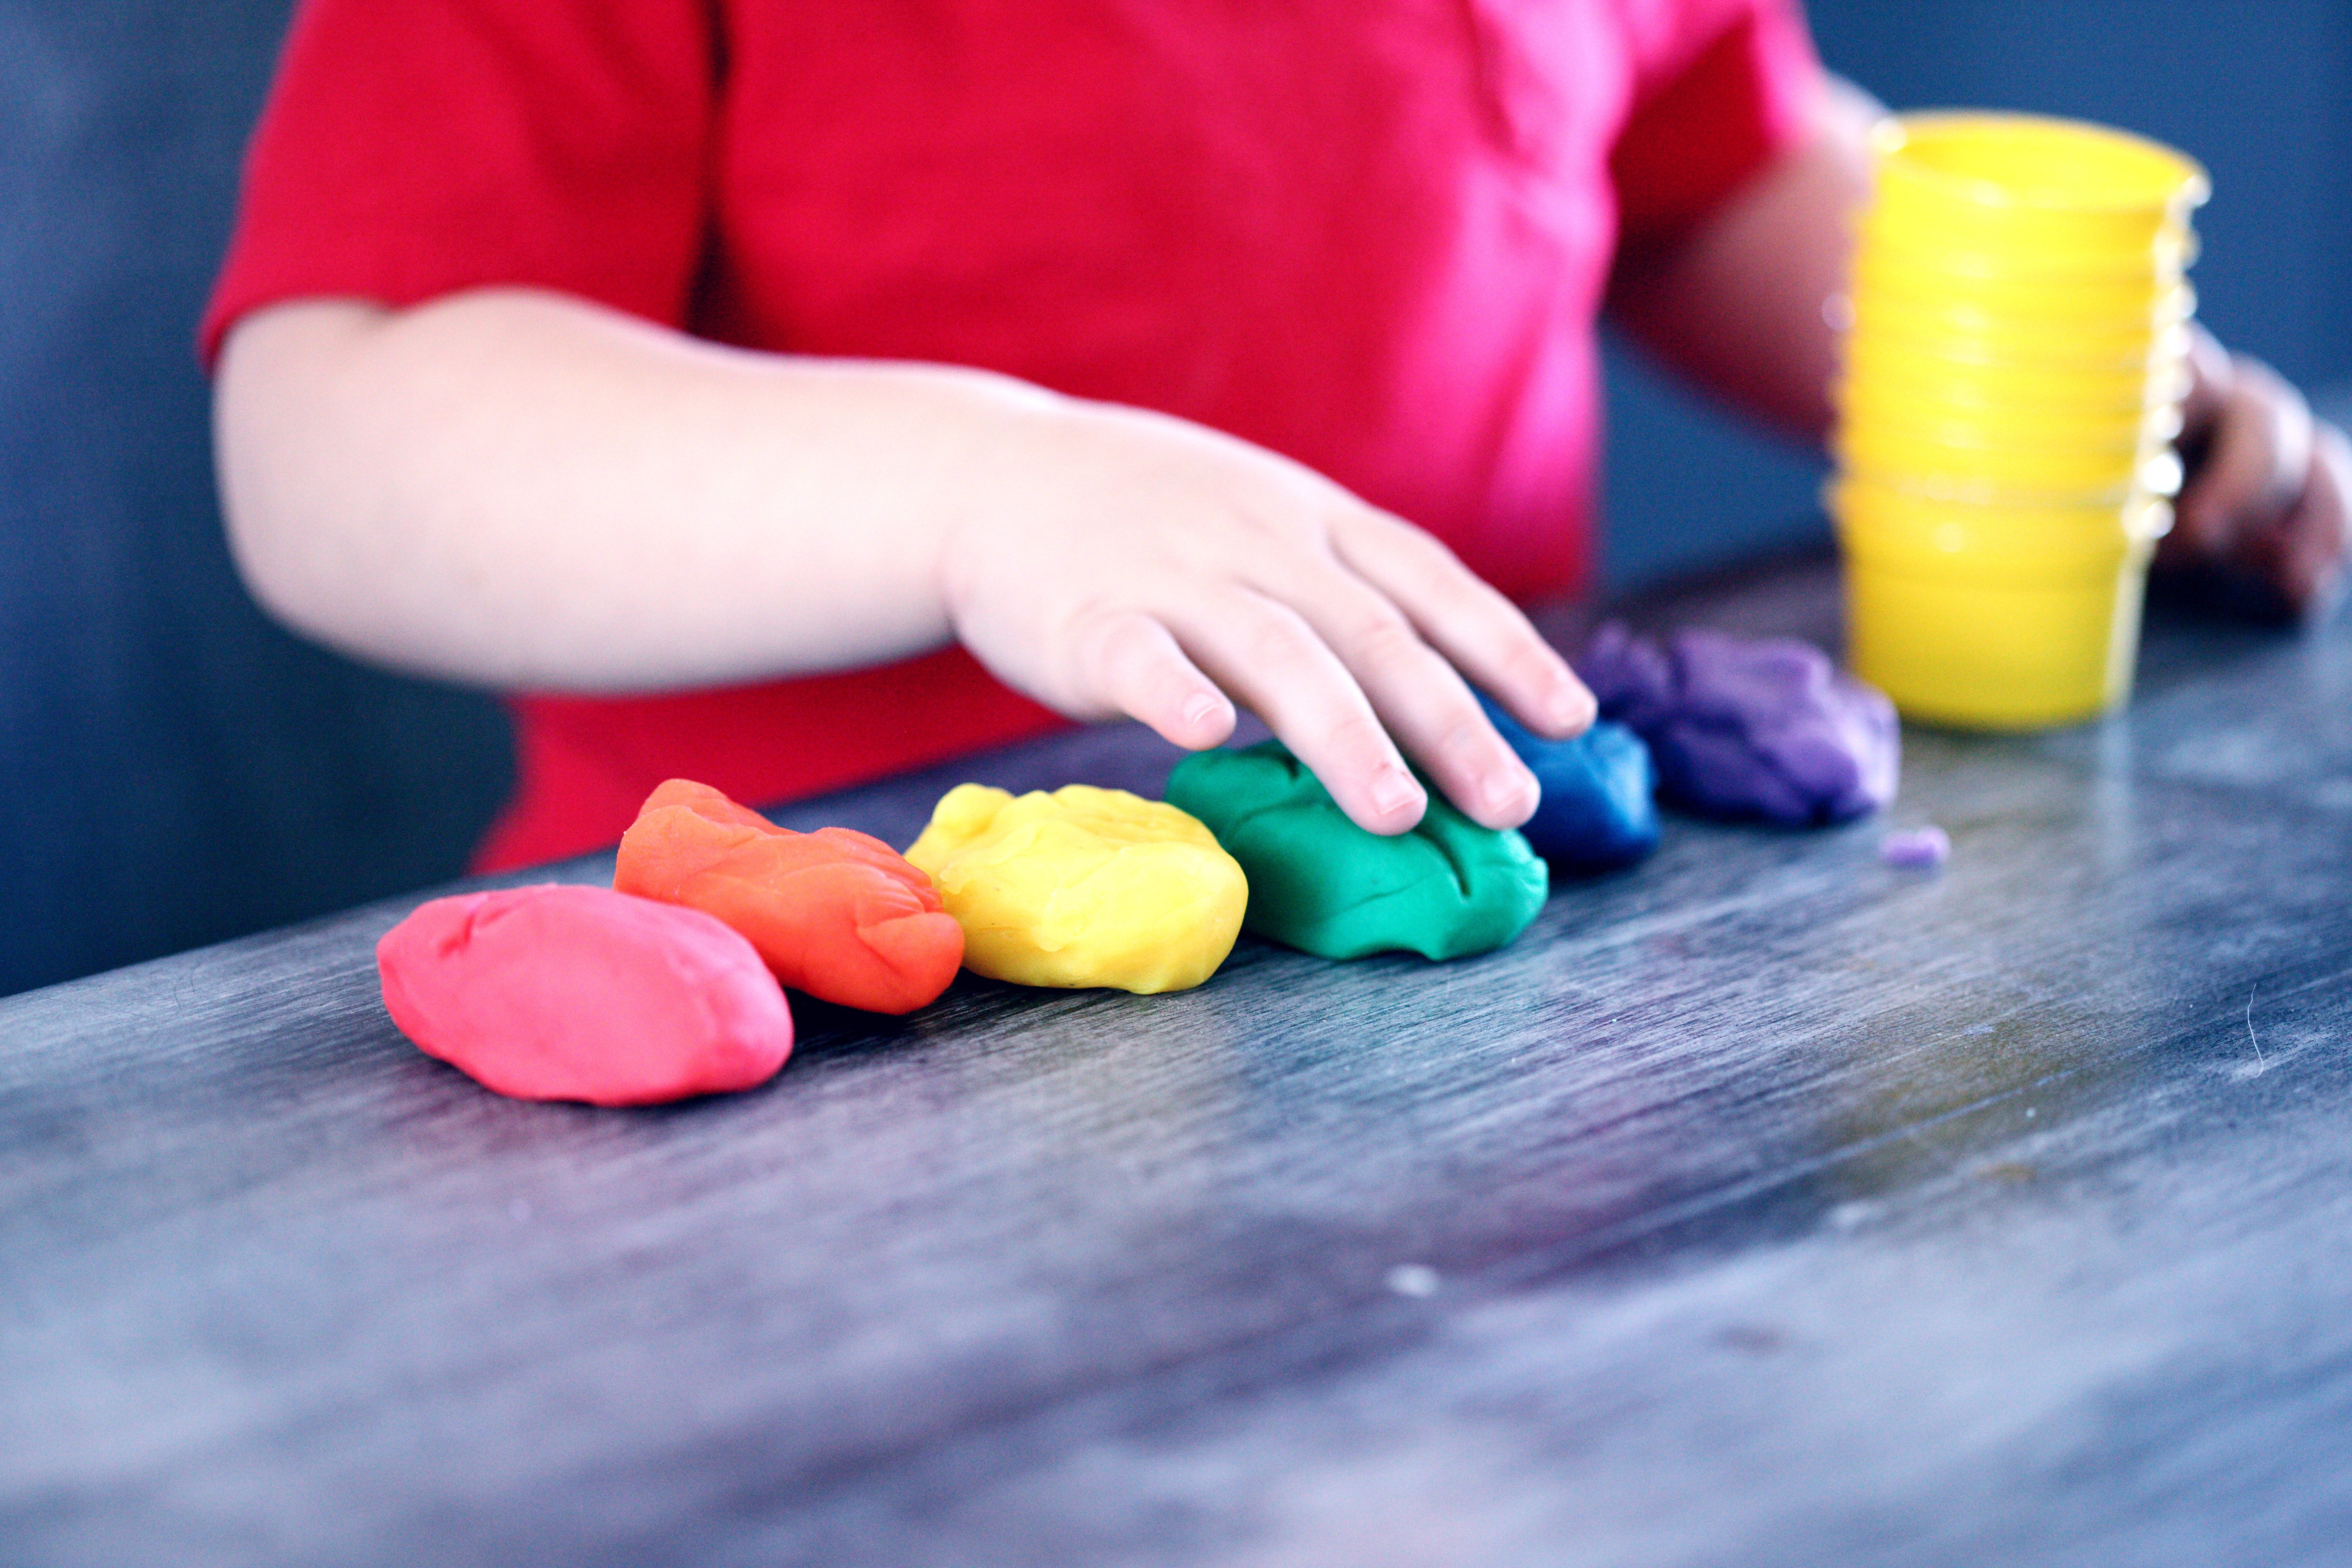 toys for fine motor skills development